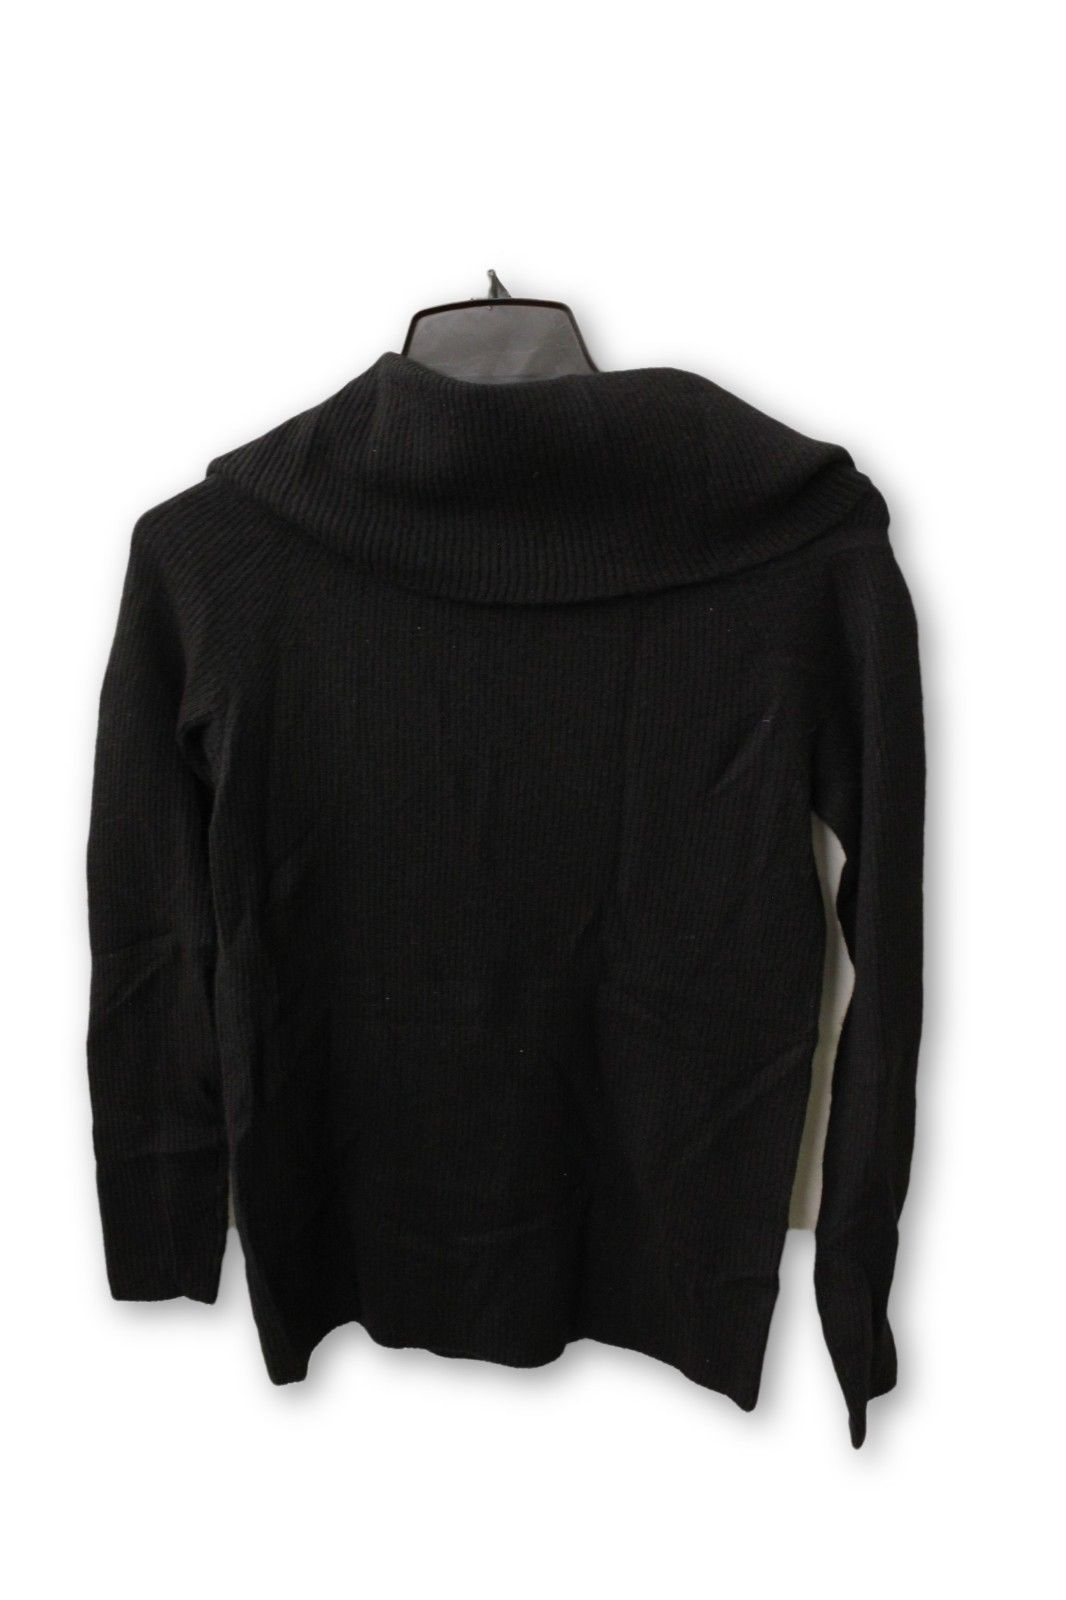 C by Bloomingdale's Women's Cashmere - Black Cowl Neck Sweater S NWT